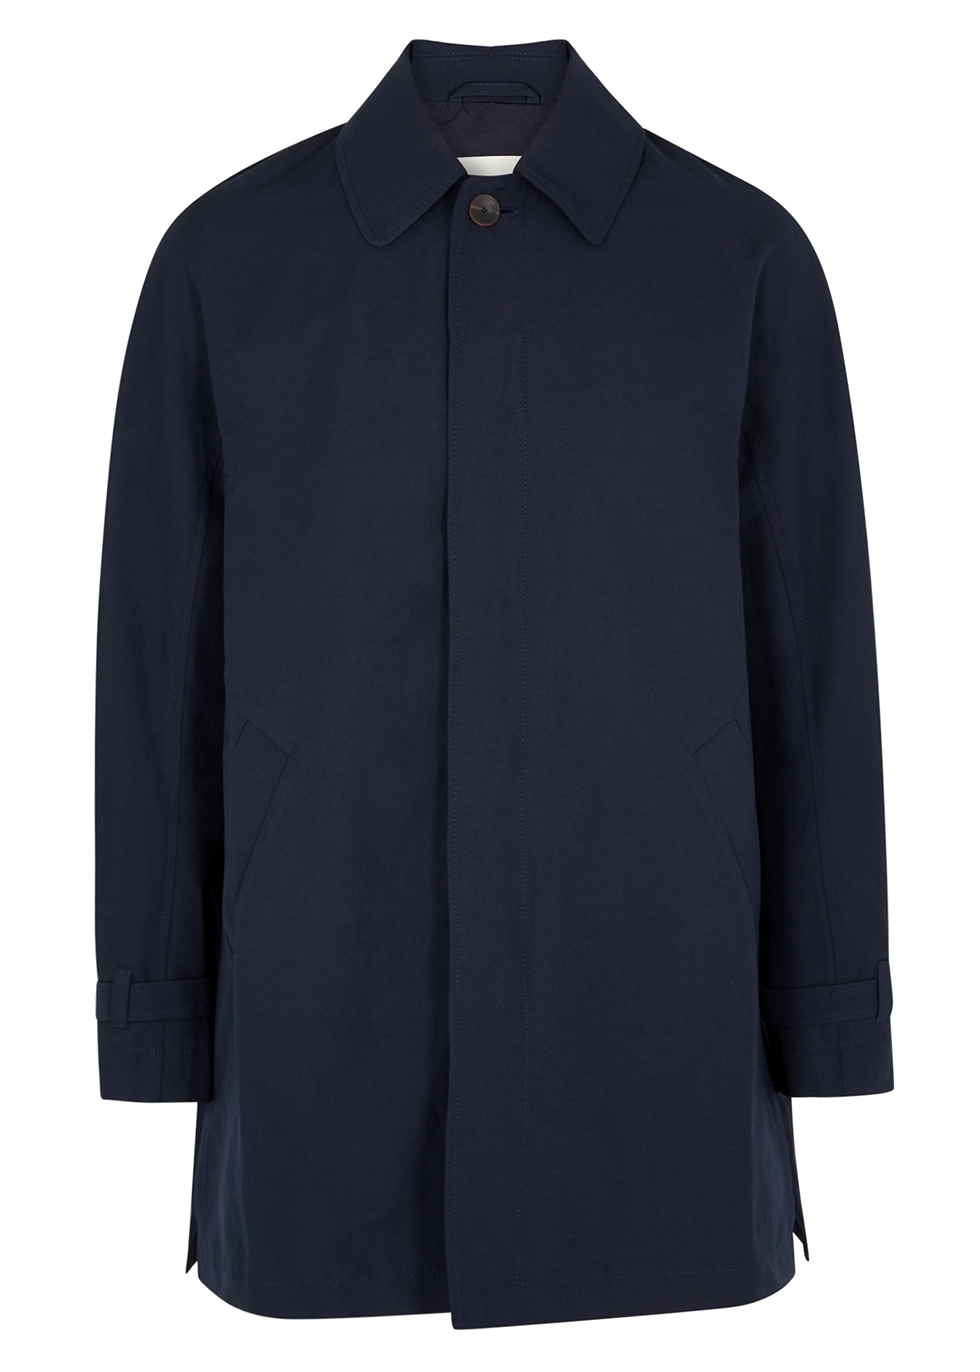 Navy woven jacket - A Kind of Guise